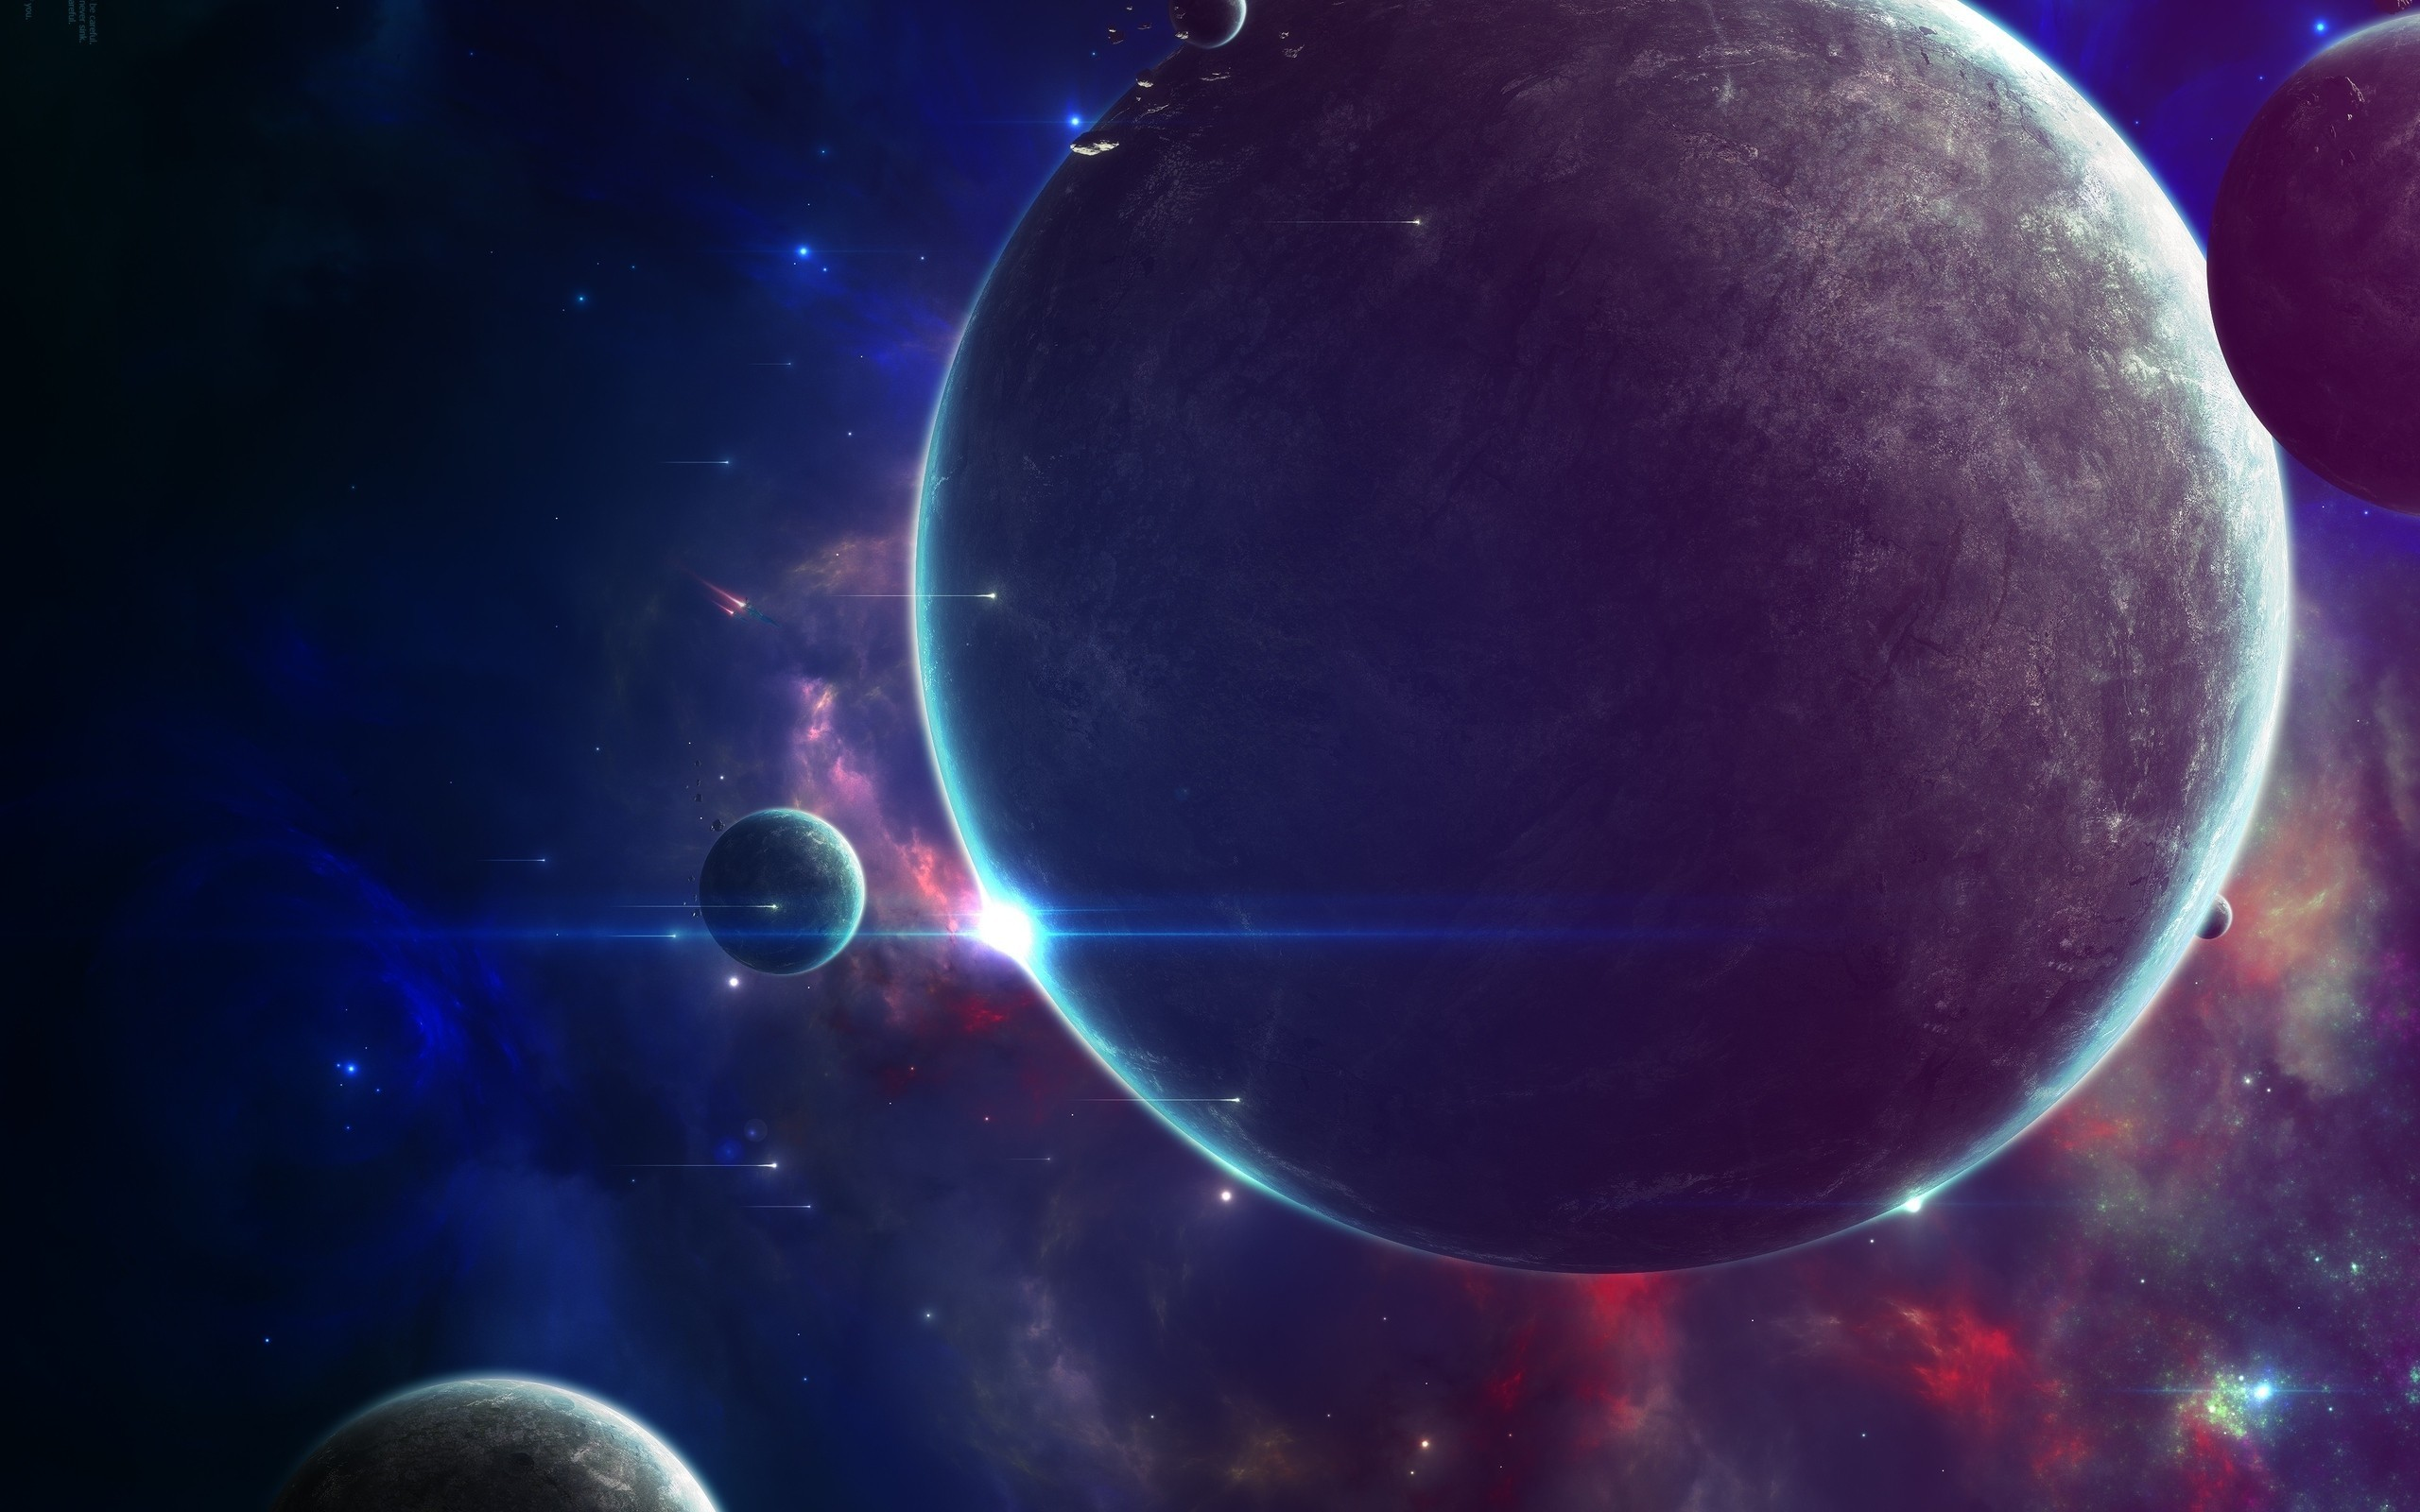 outer space futuristic planets HD Wallpaper